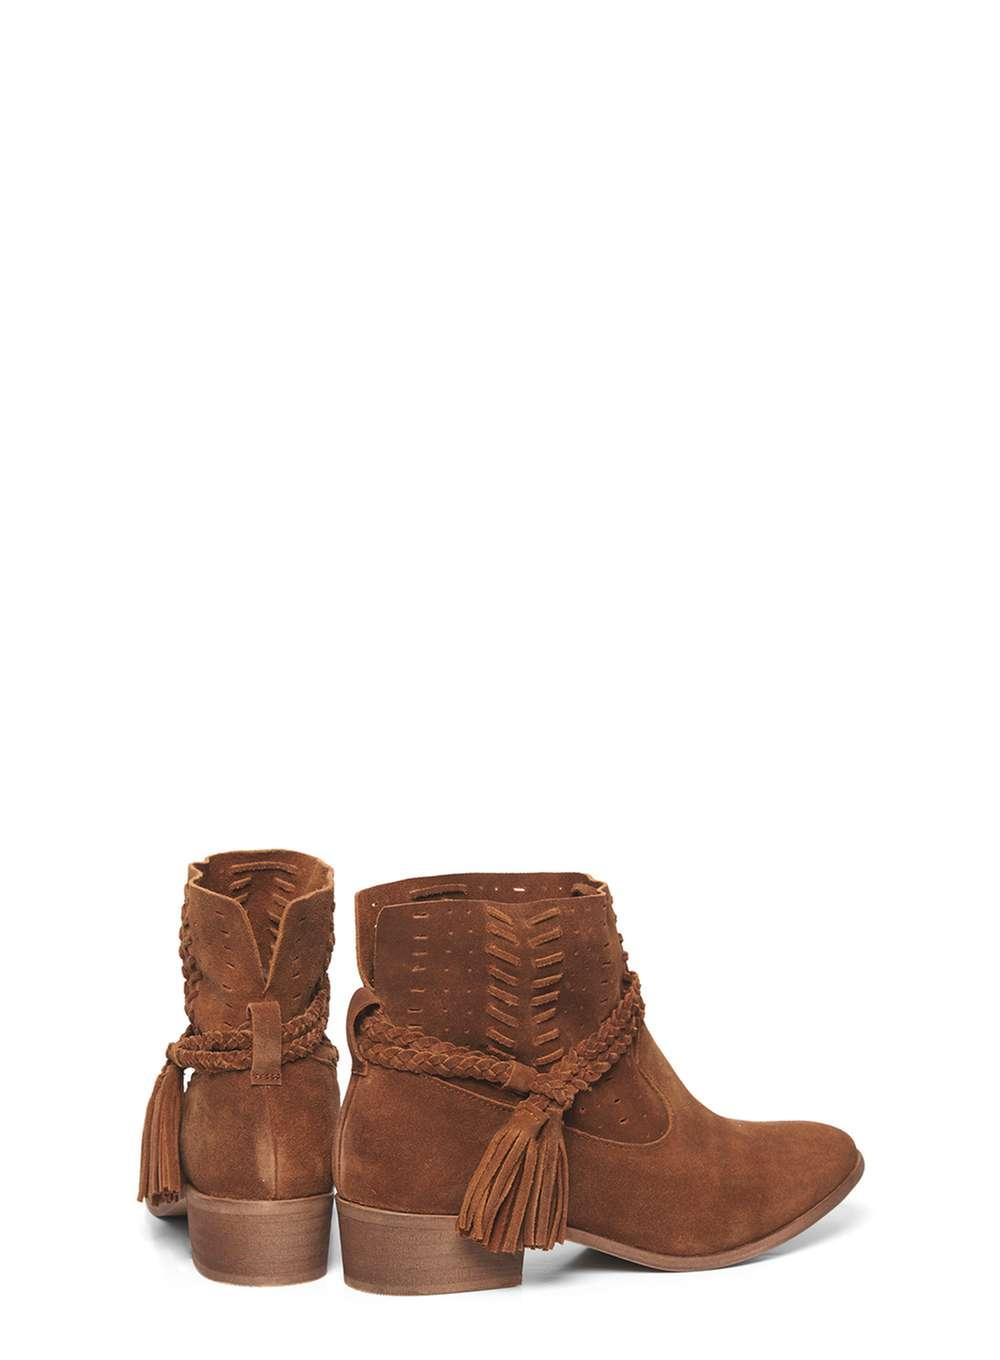 dorothy perkins leather boots in brown lyst